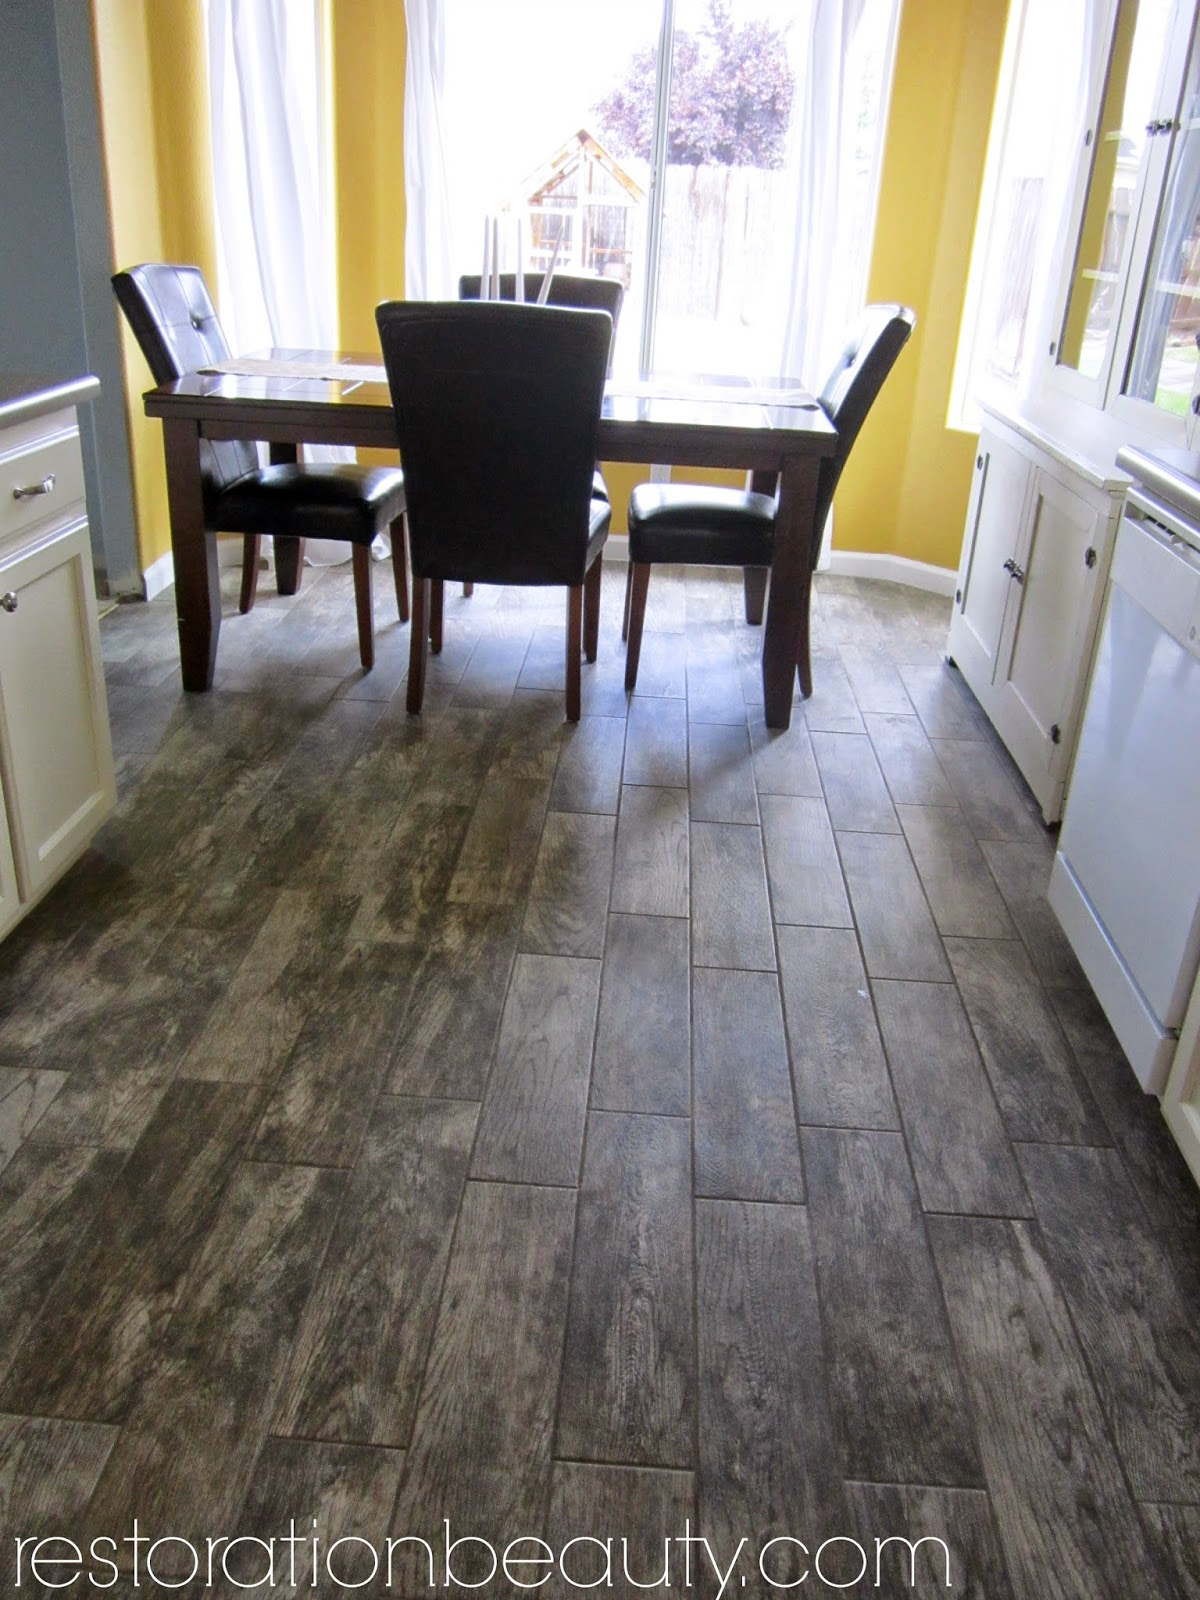 Restoration beauty faux wood tile flooring in the kitchen for Fake hardwood tile